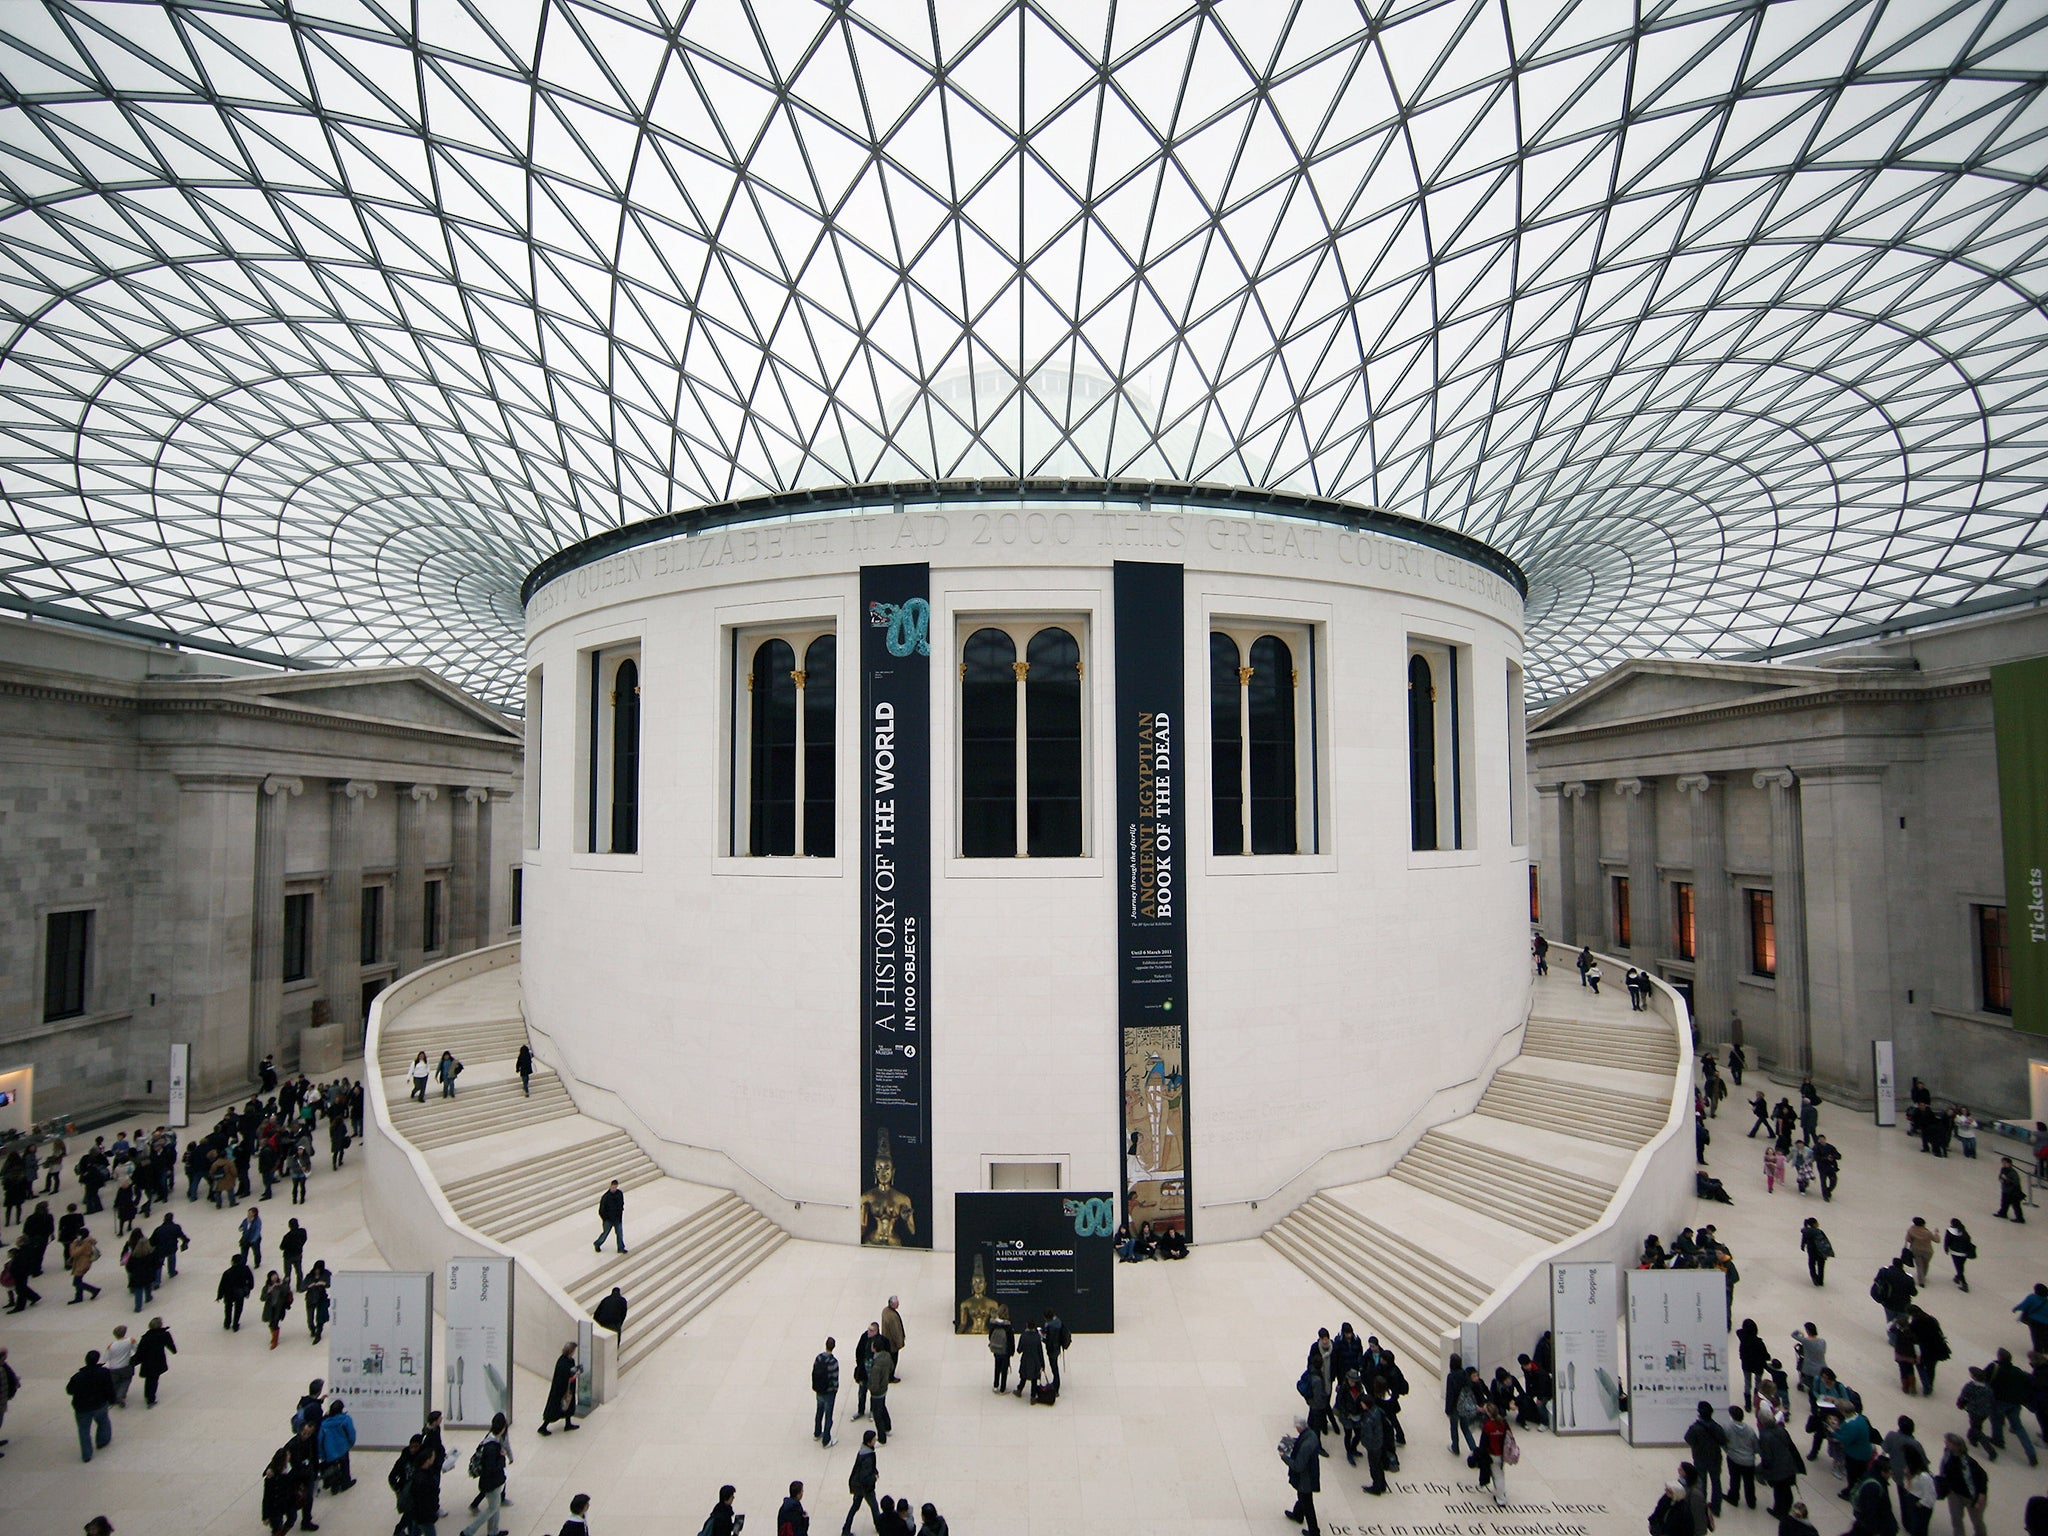 British Museum evacuated: Controlled explosion of unattended vehicle ...